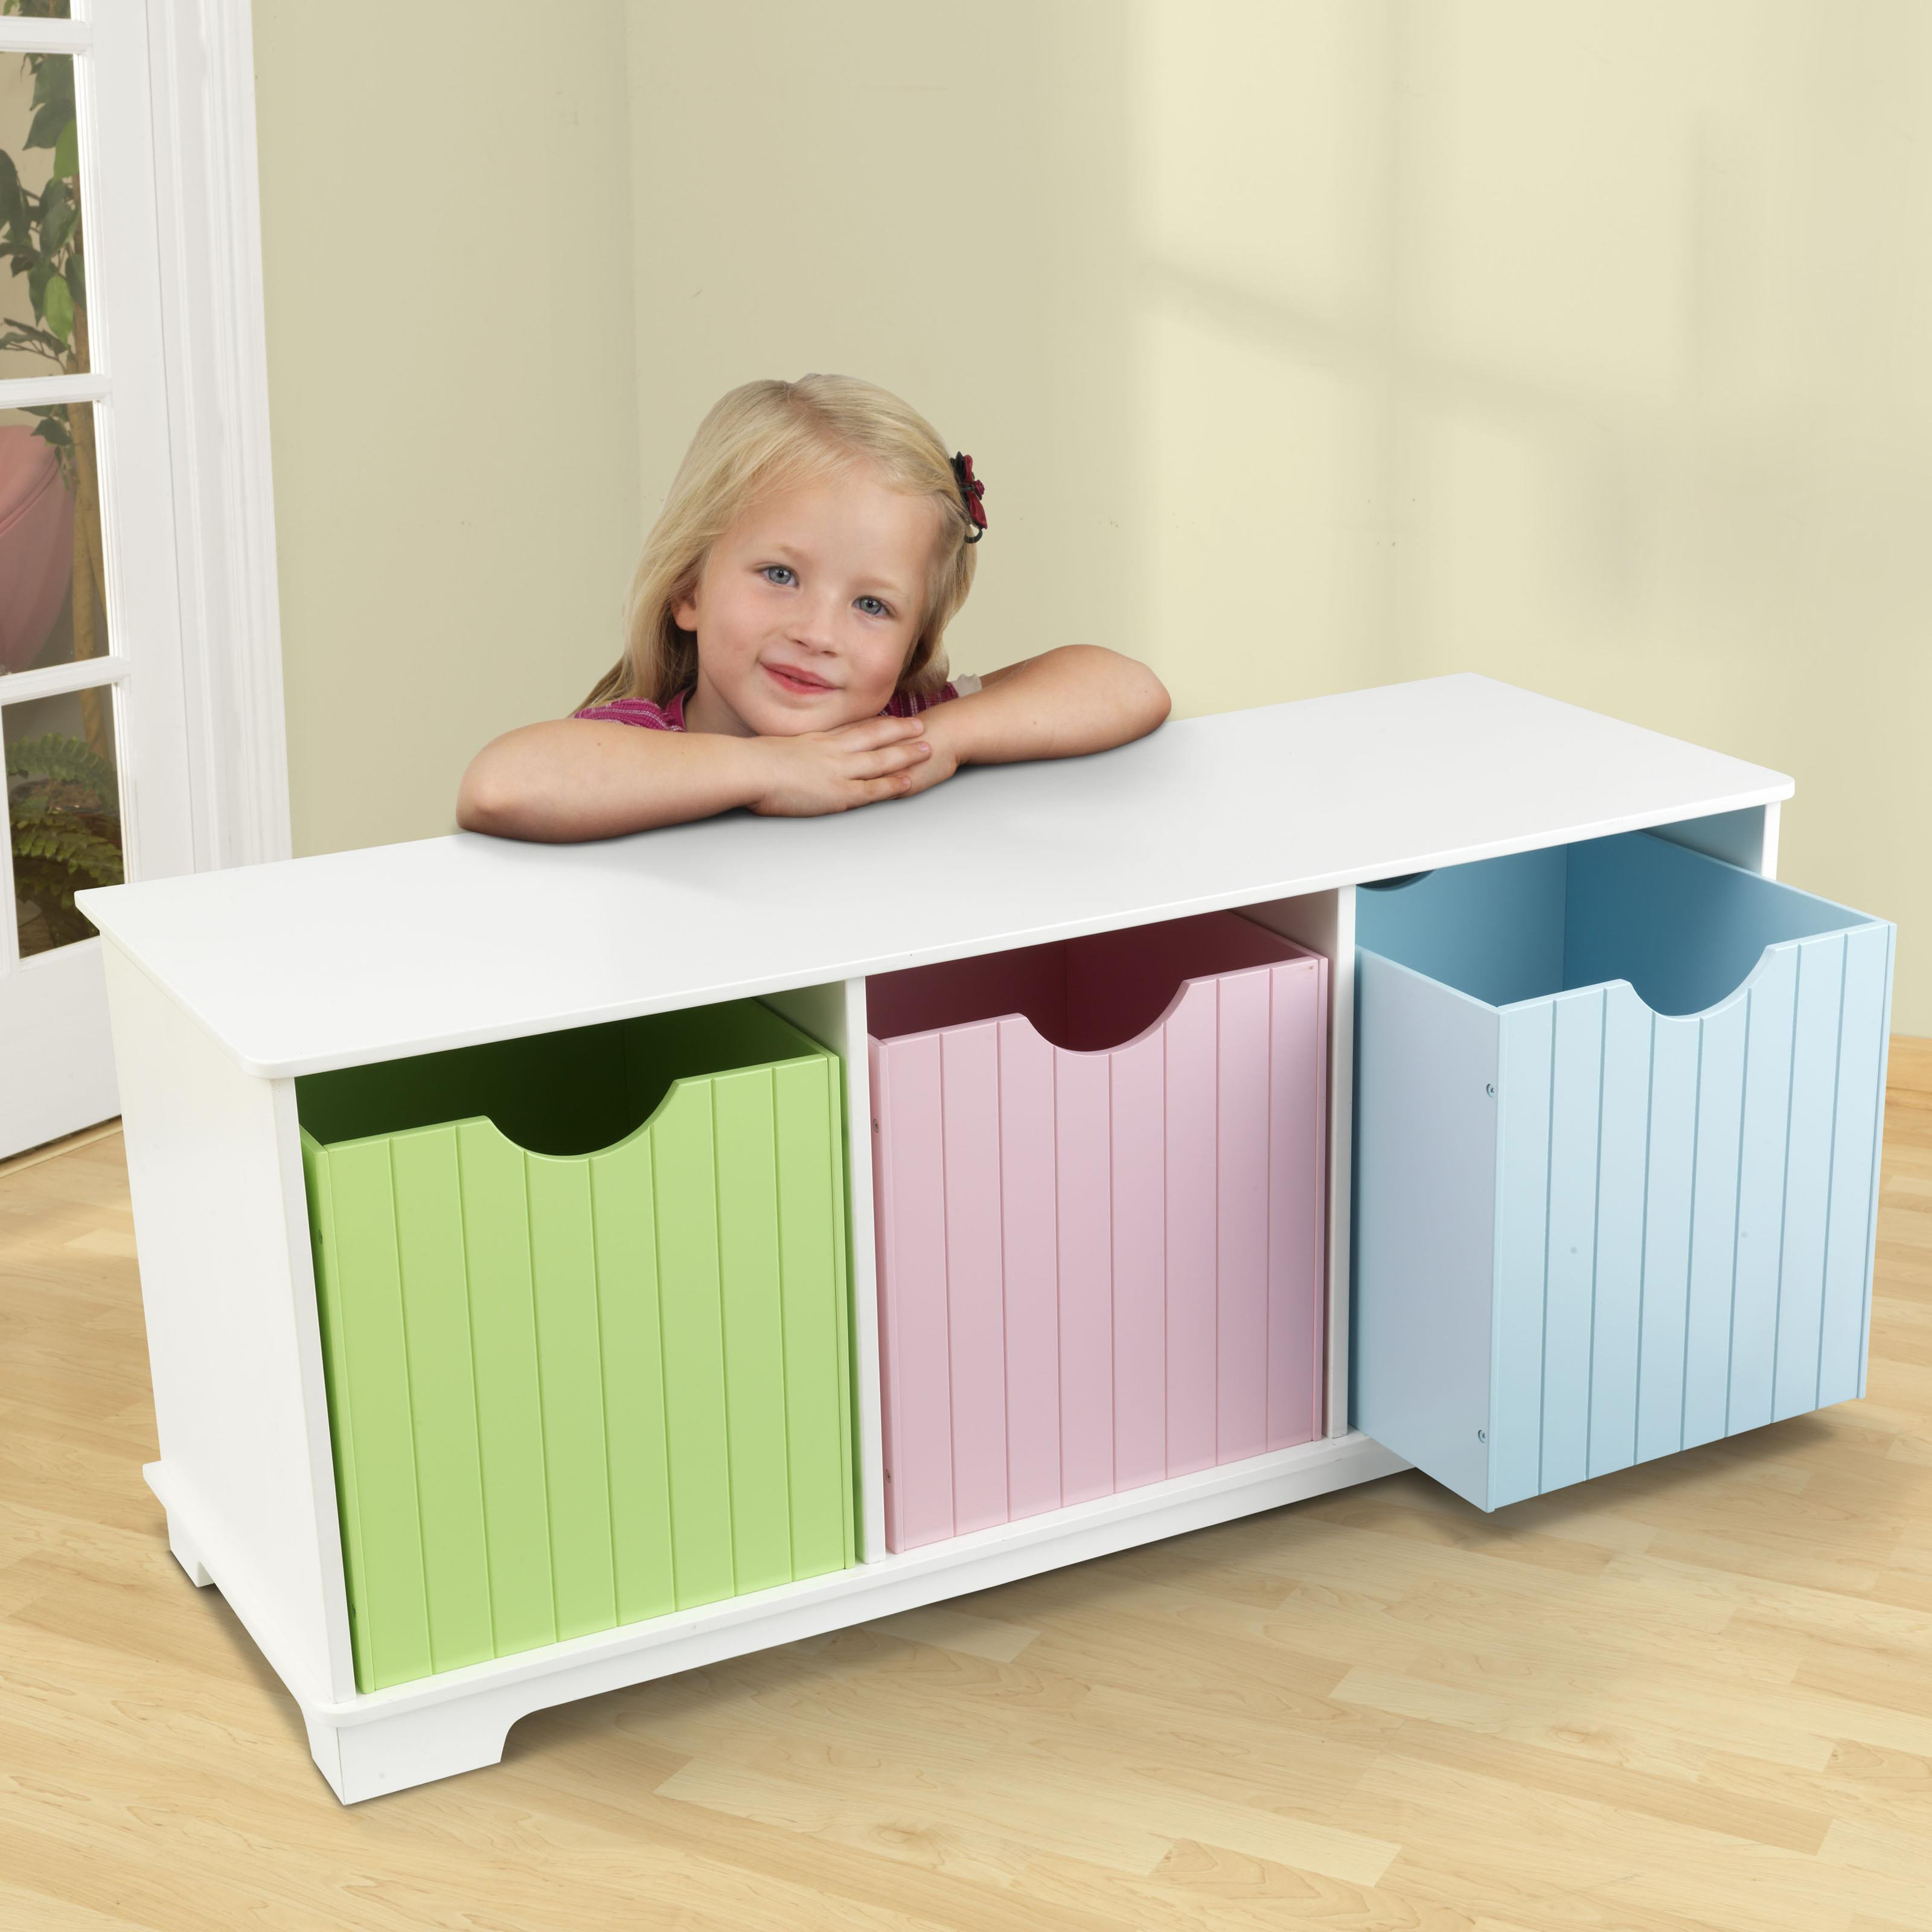 KidKraft - Nantucket Storage Bench, Multiple Colors